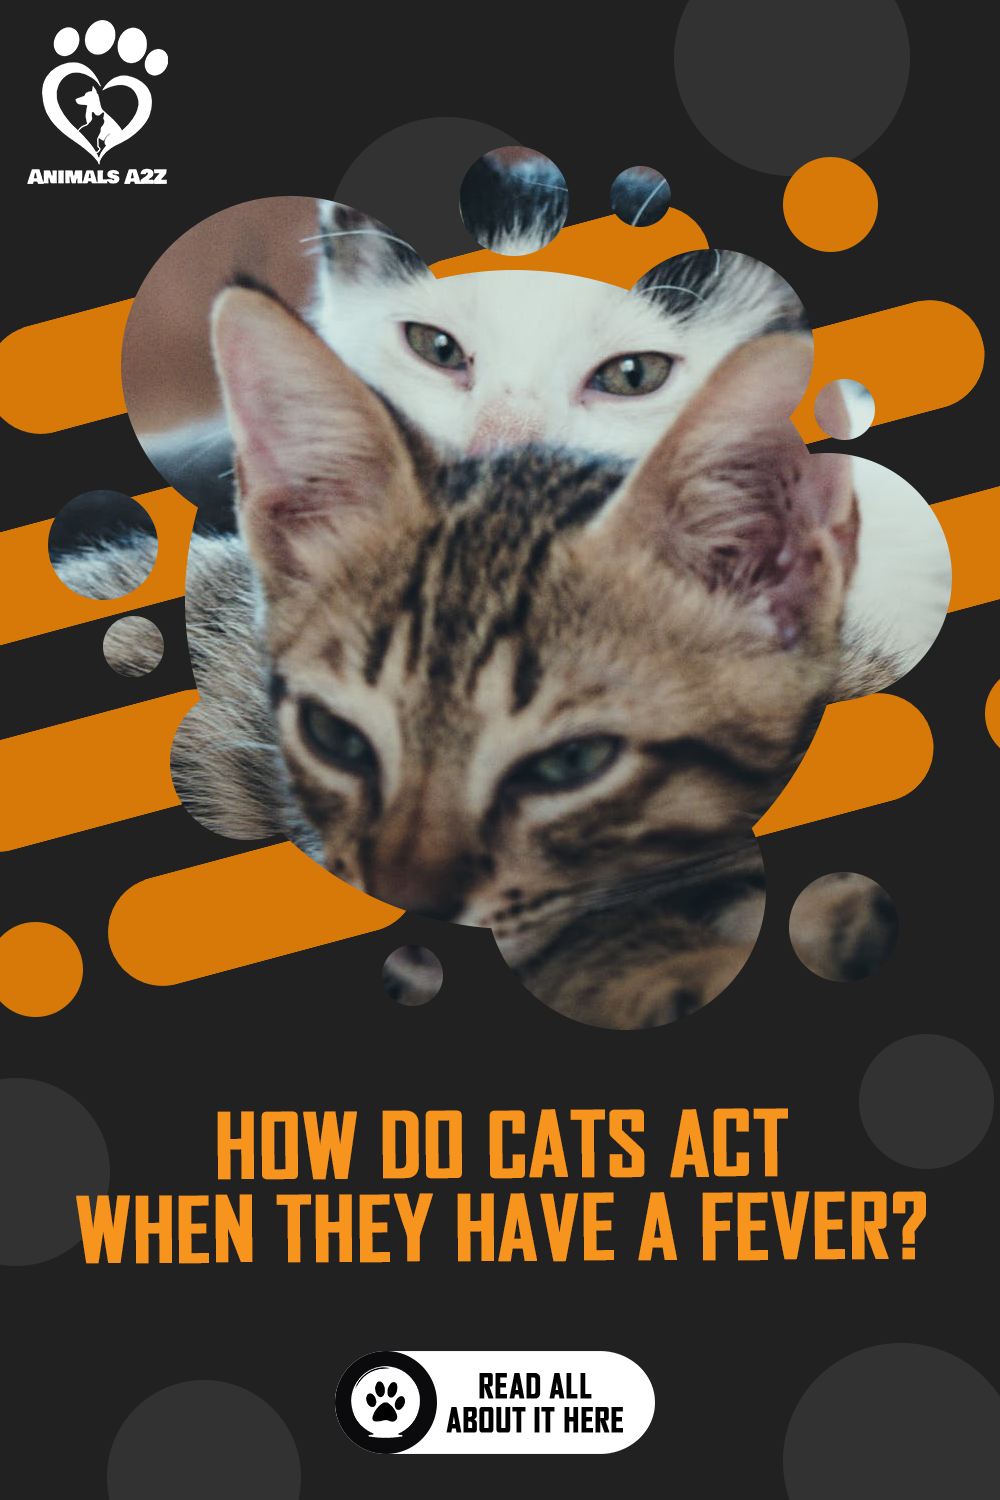 How Do Cats Act When They Have A Fever Detailed Answer Act Answer Cats Detailed Fever In 2020 Pet Cancer Awareness Pet Cancer Sick Cat